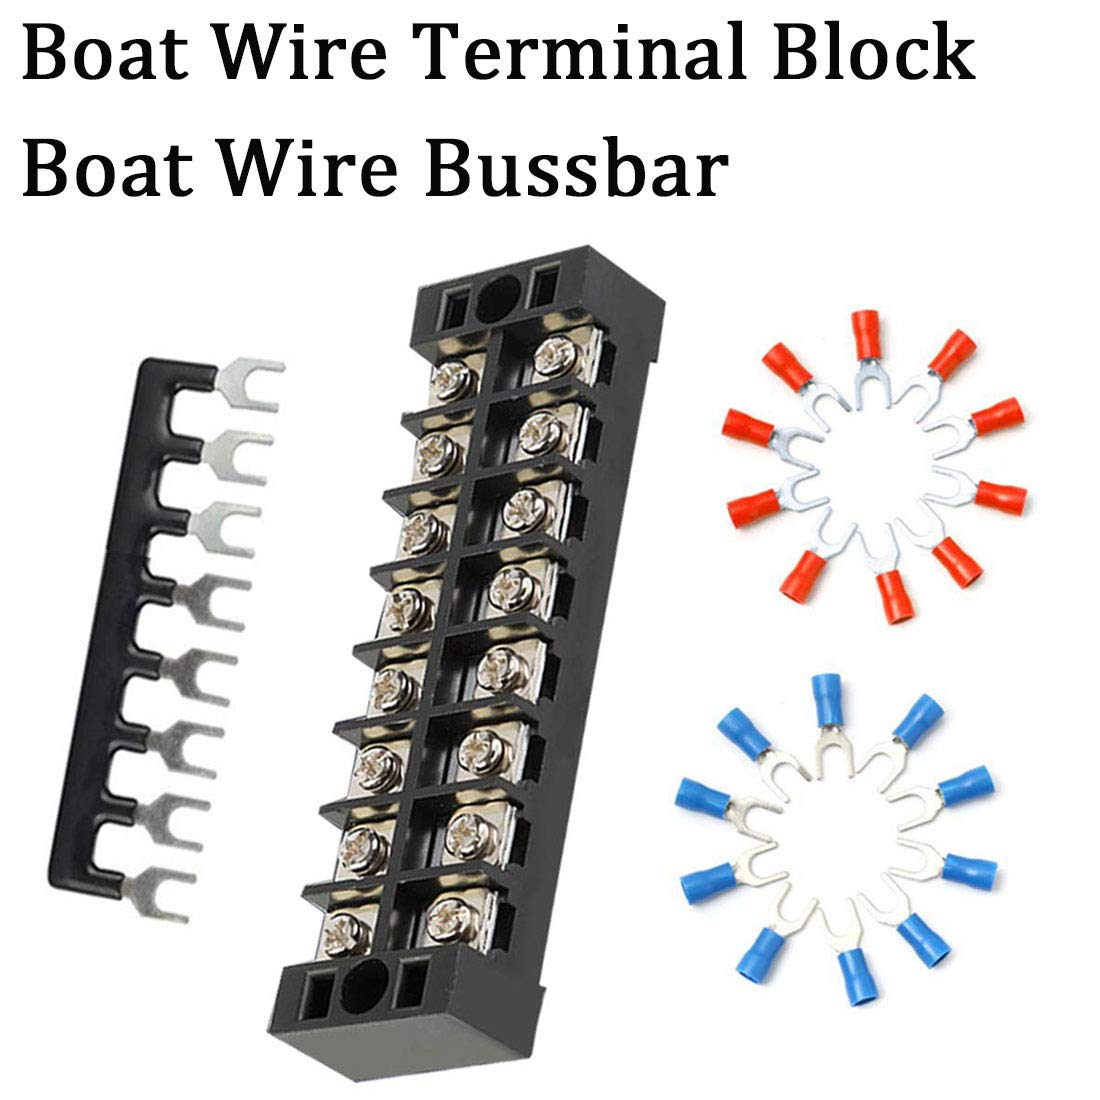 Brilliant Boat Wiring Terminal Block Basic Electronics Wiring Diagram Wiring Digital Resources Dylitashwinbiharinl